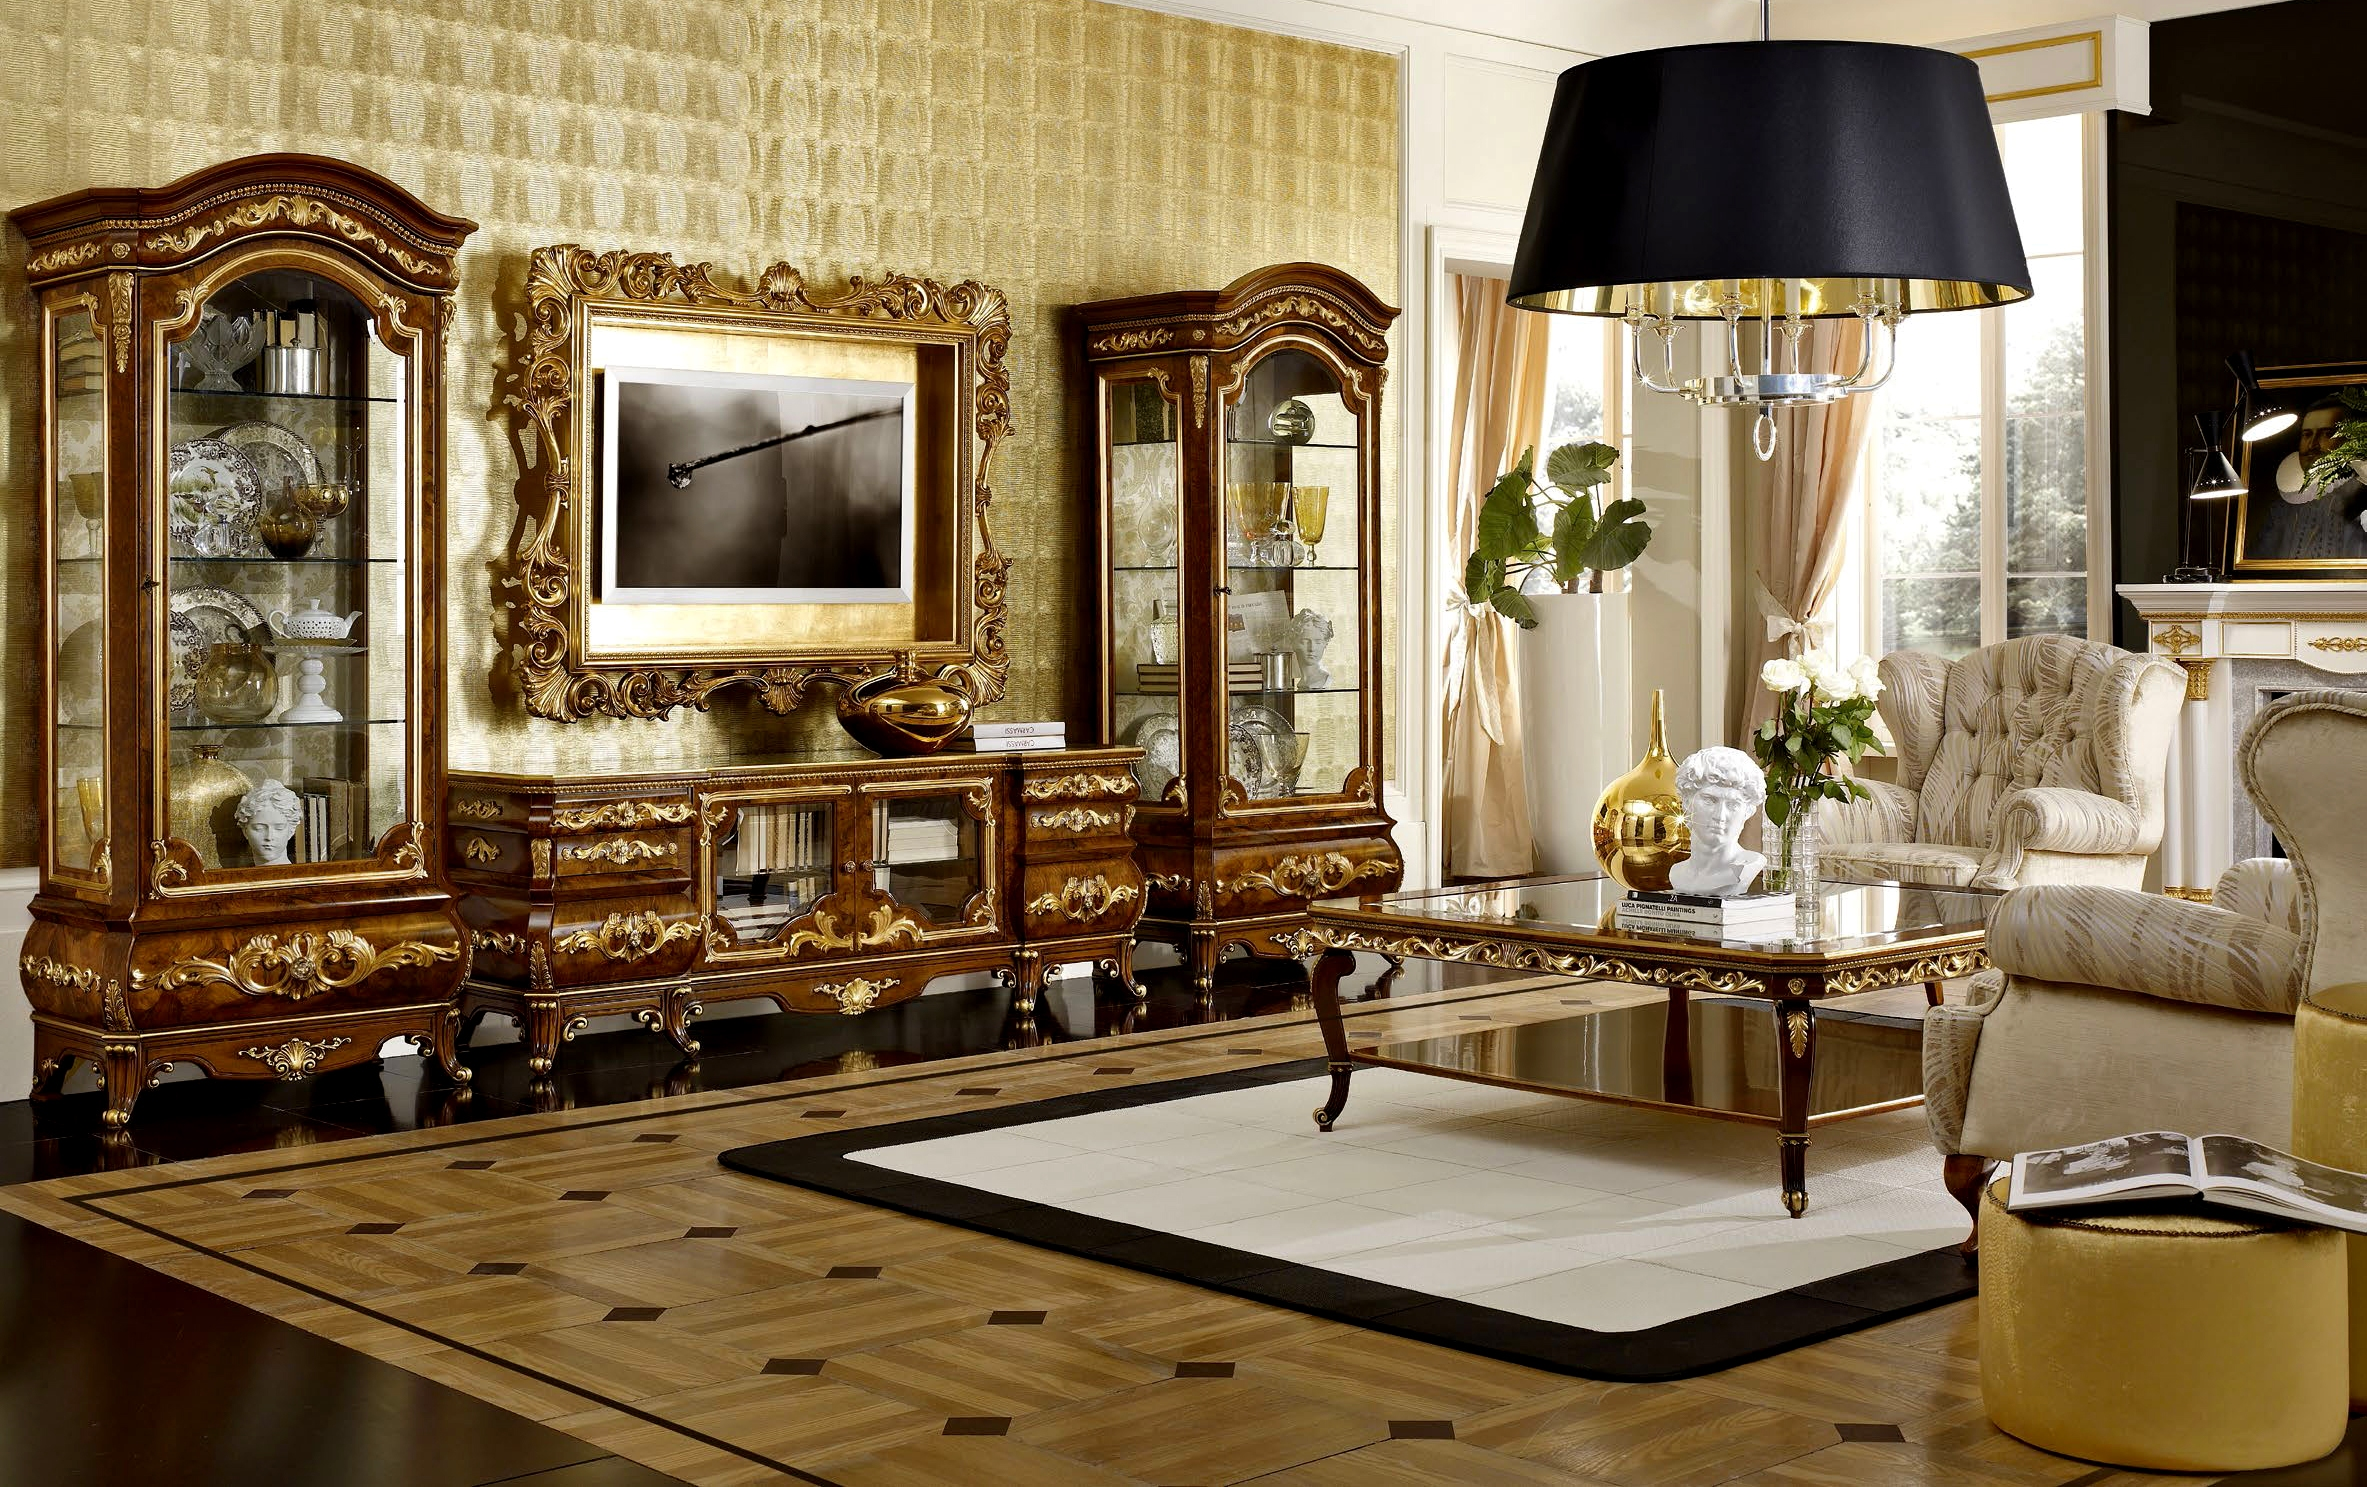 Italian Furniture For The Living Room Furniture In The Classic And Modern Style Of Production Italy Modern Or Classic In The Arrangement Of The Living Room